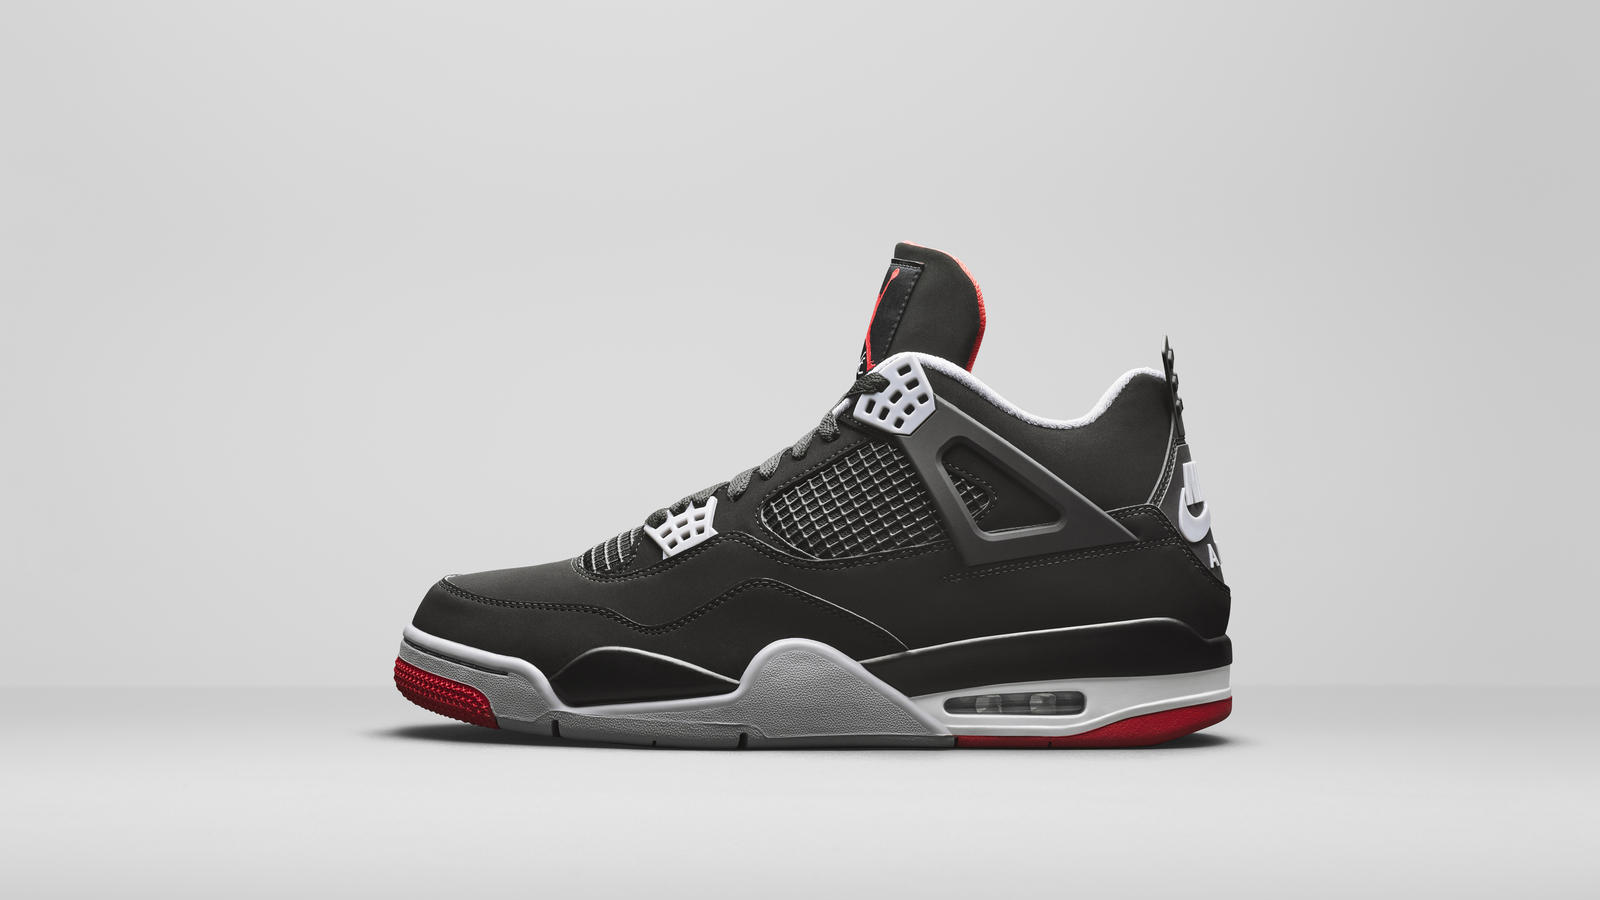 sneakers for cheap fafb4 d313c Air Jordan 4 Bred Official Images and Release Date 4